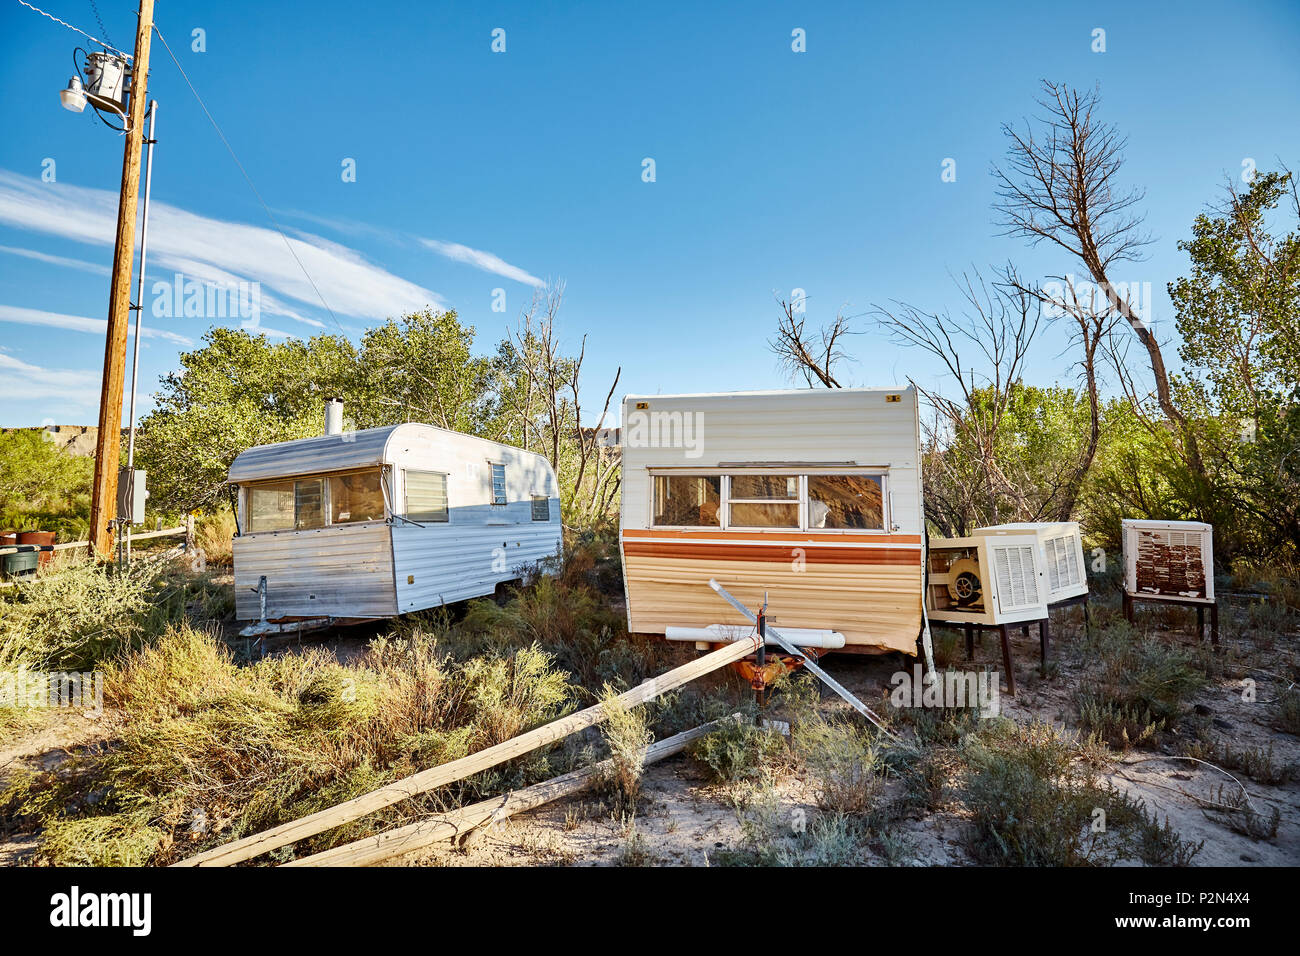 Picture of an abandoned travel trailer park, USA. Stock Photo